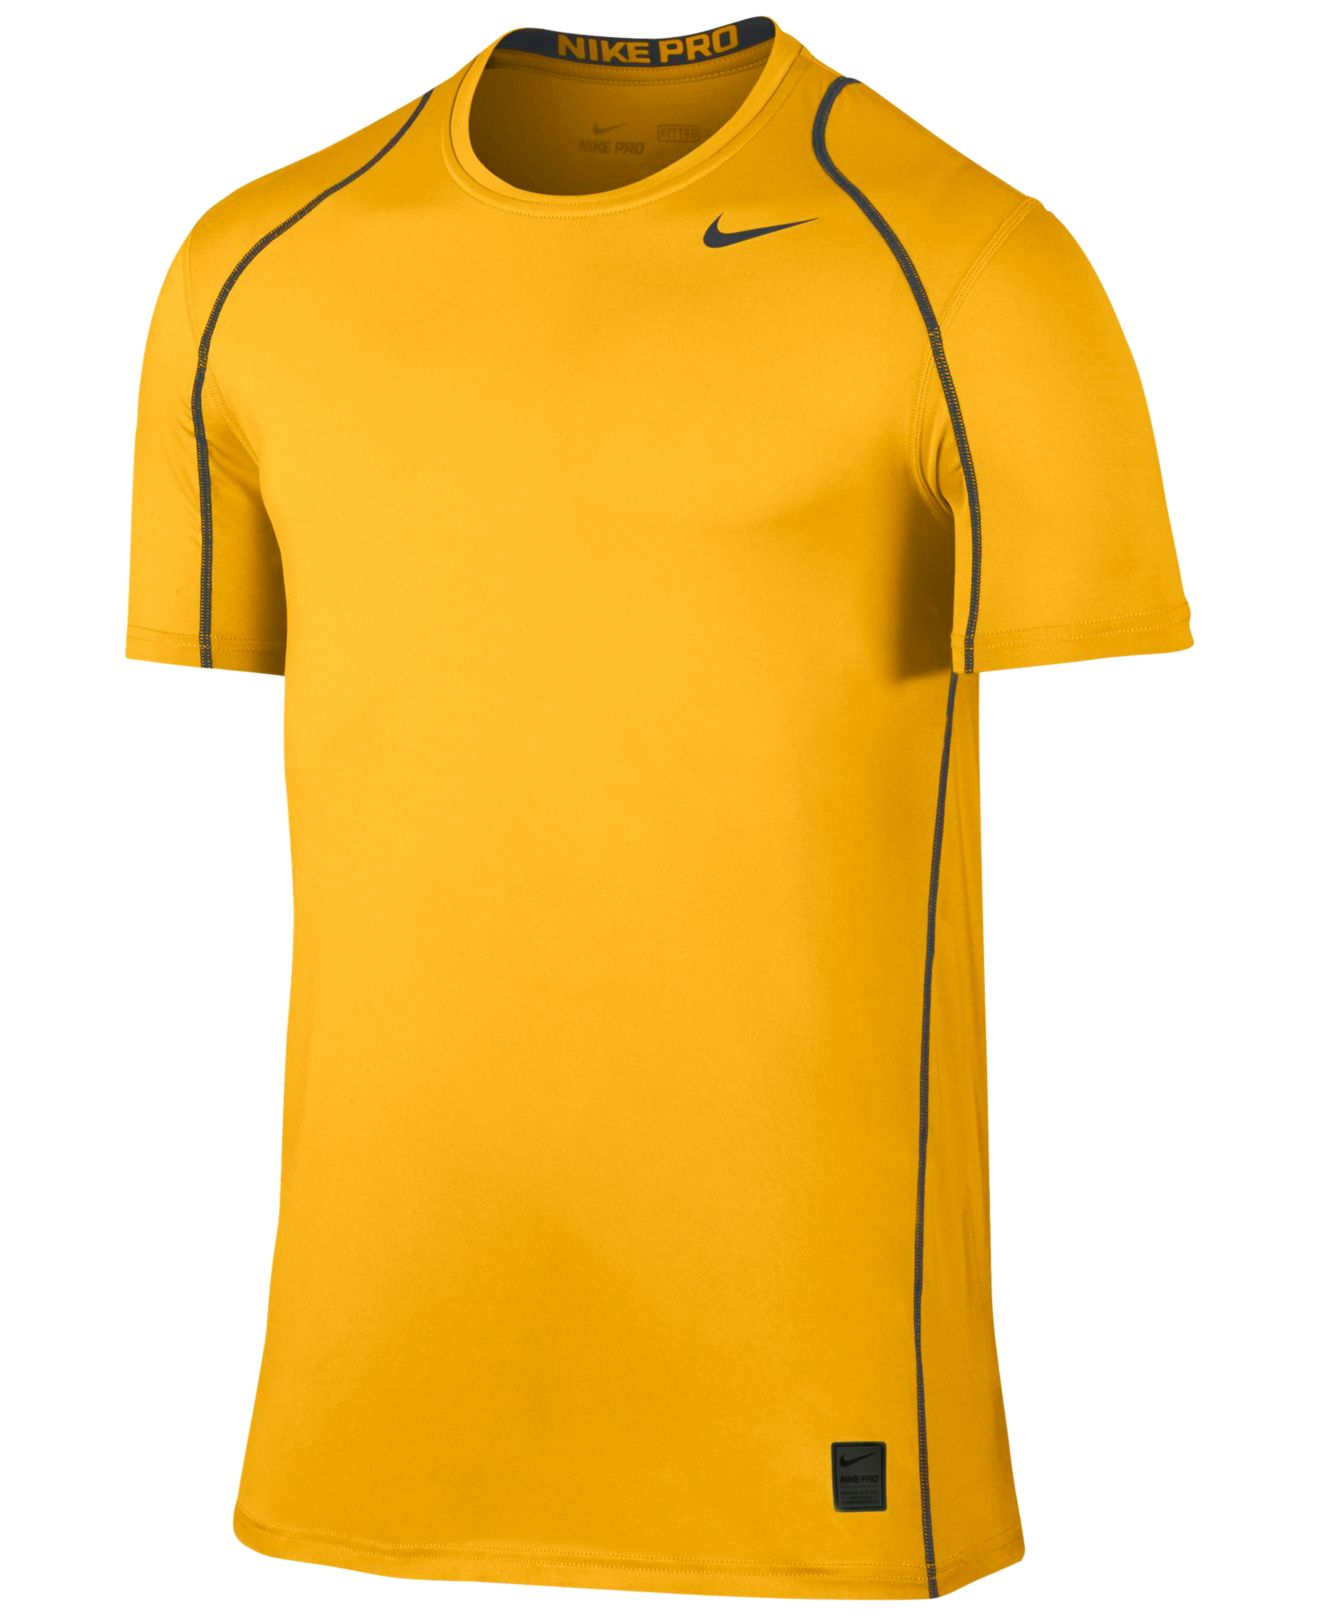 d83a8cab Nike Men's Pro Cool Fitted Dri-fit Shirt in Yellow for Men - Lyst